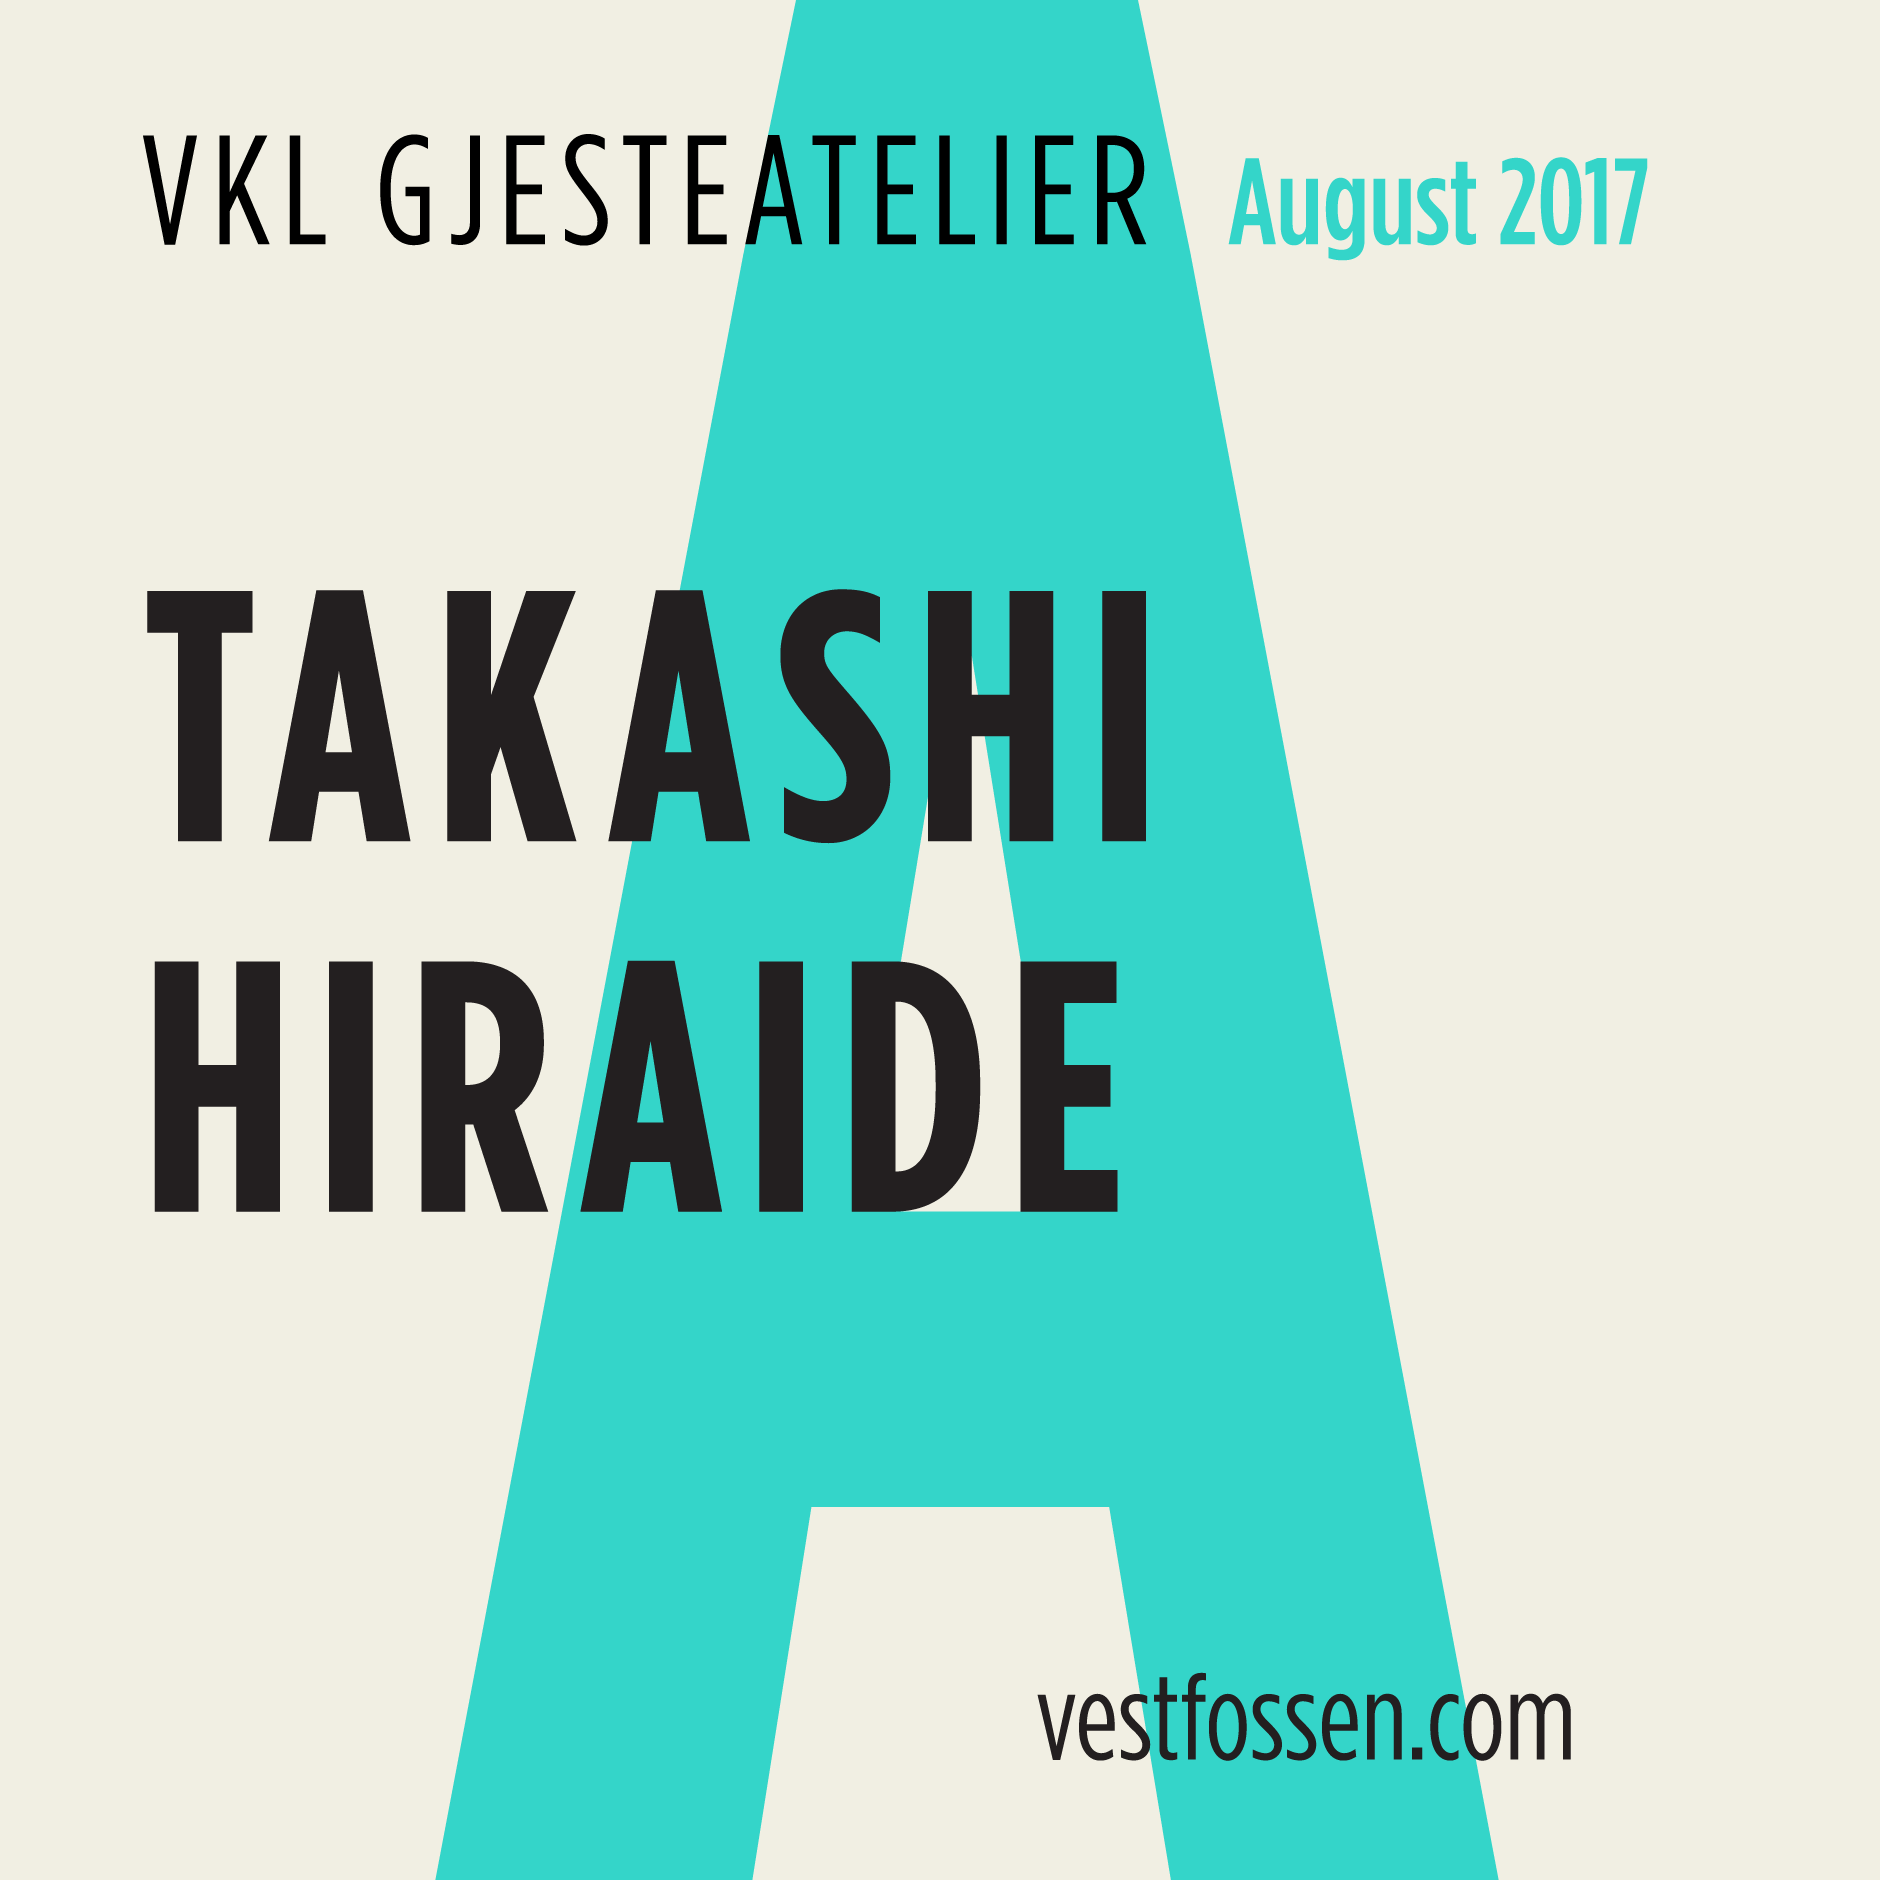 4 VKL Gjesteatelier 2017 august